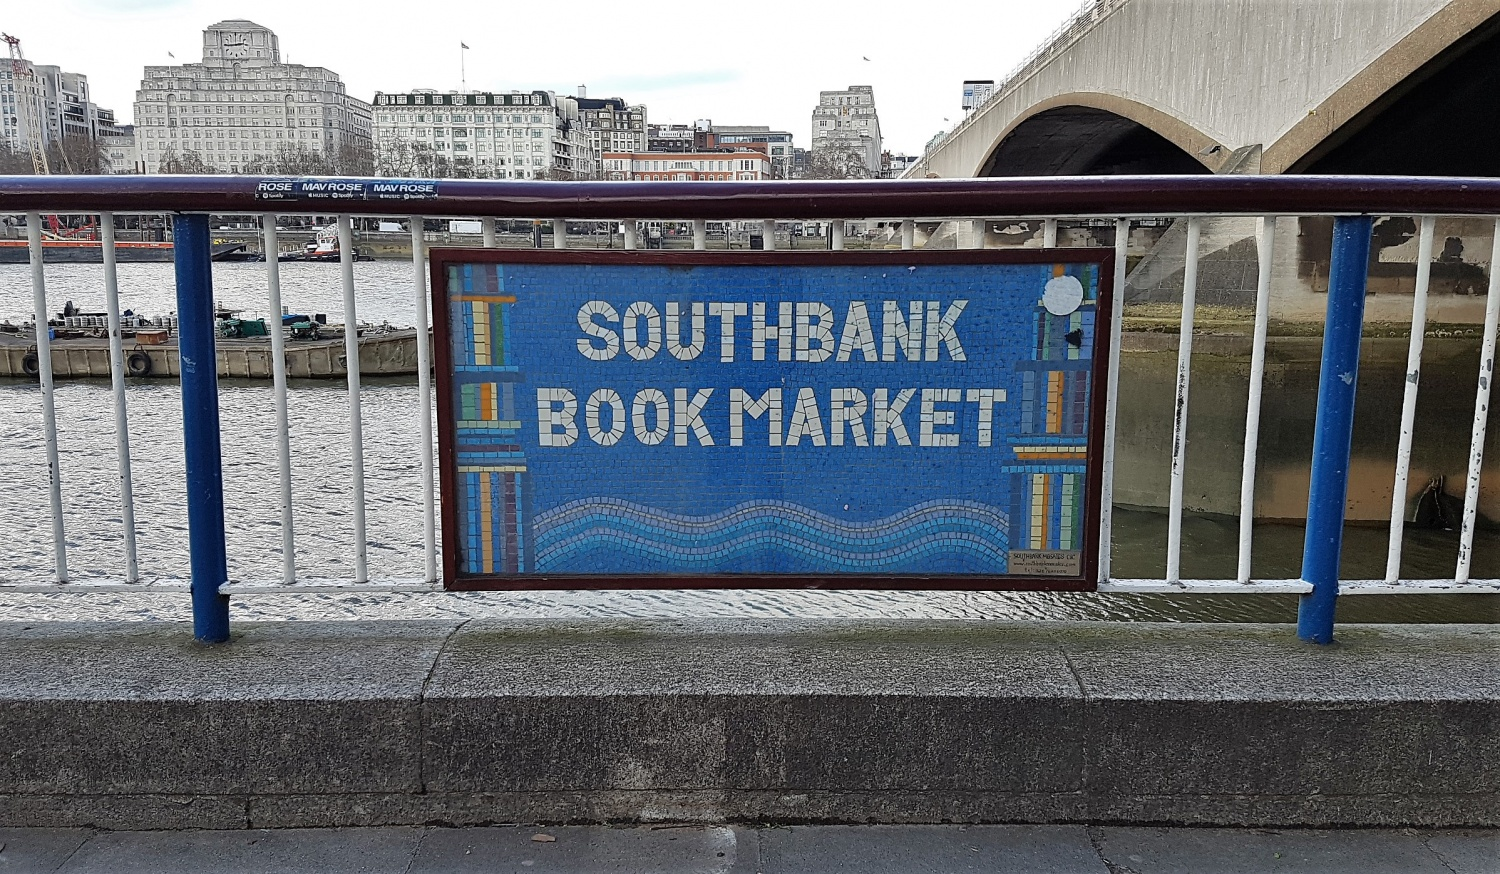 Southbank Book Market